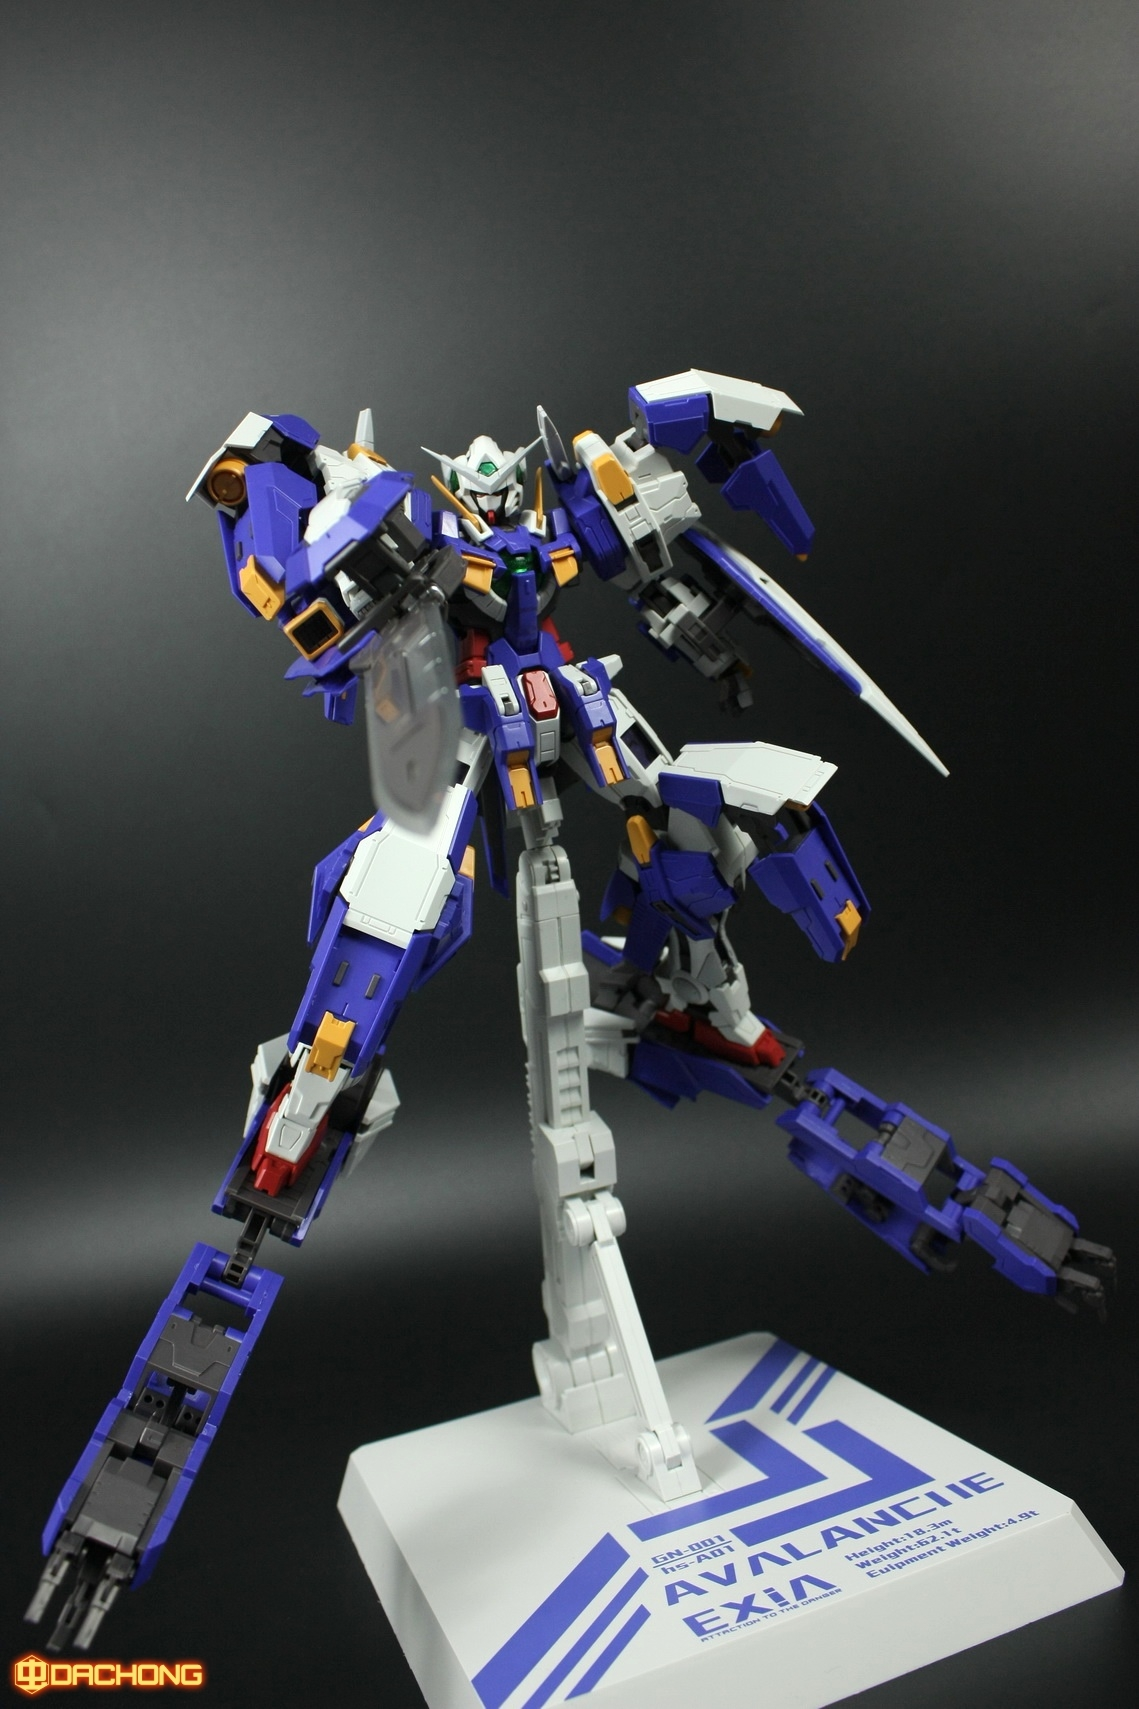 S254_MG_exia_HS_review_inask_093.jpg